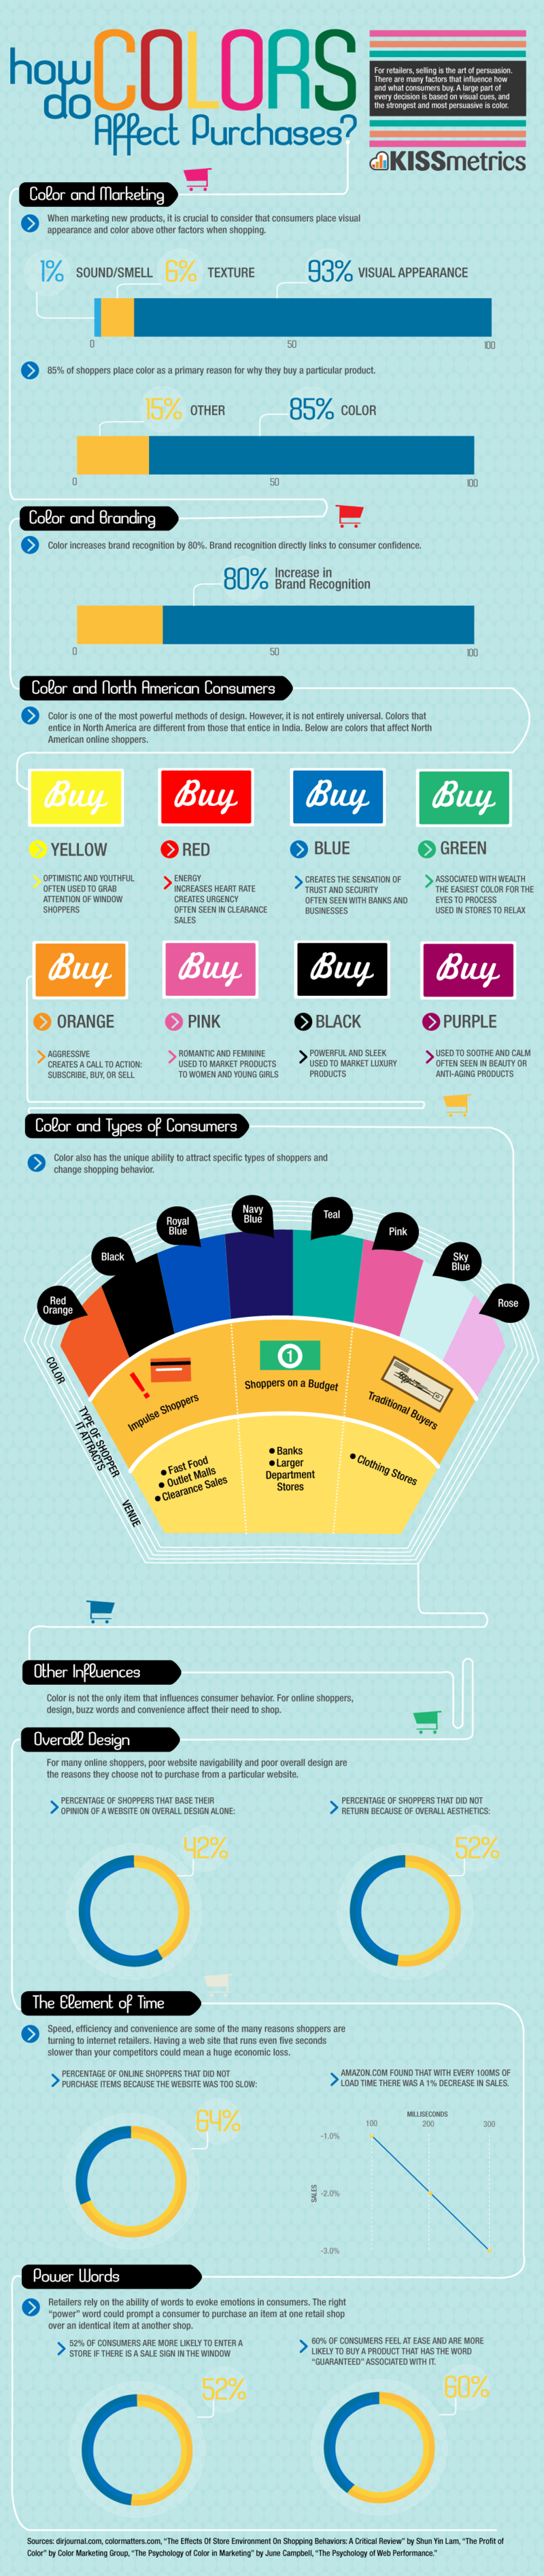 Color-purchases-lrgAccording to a Kissmetric's infographic, 85% of shoppers.